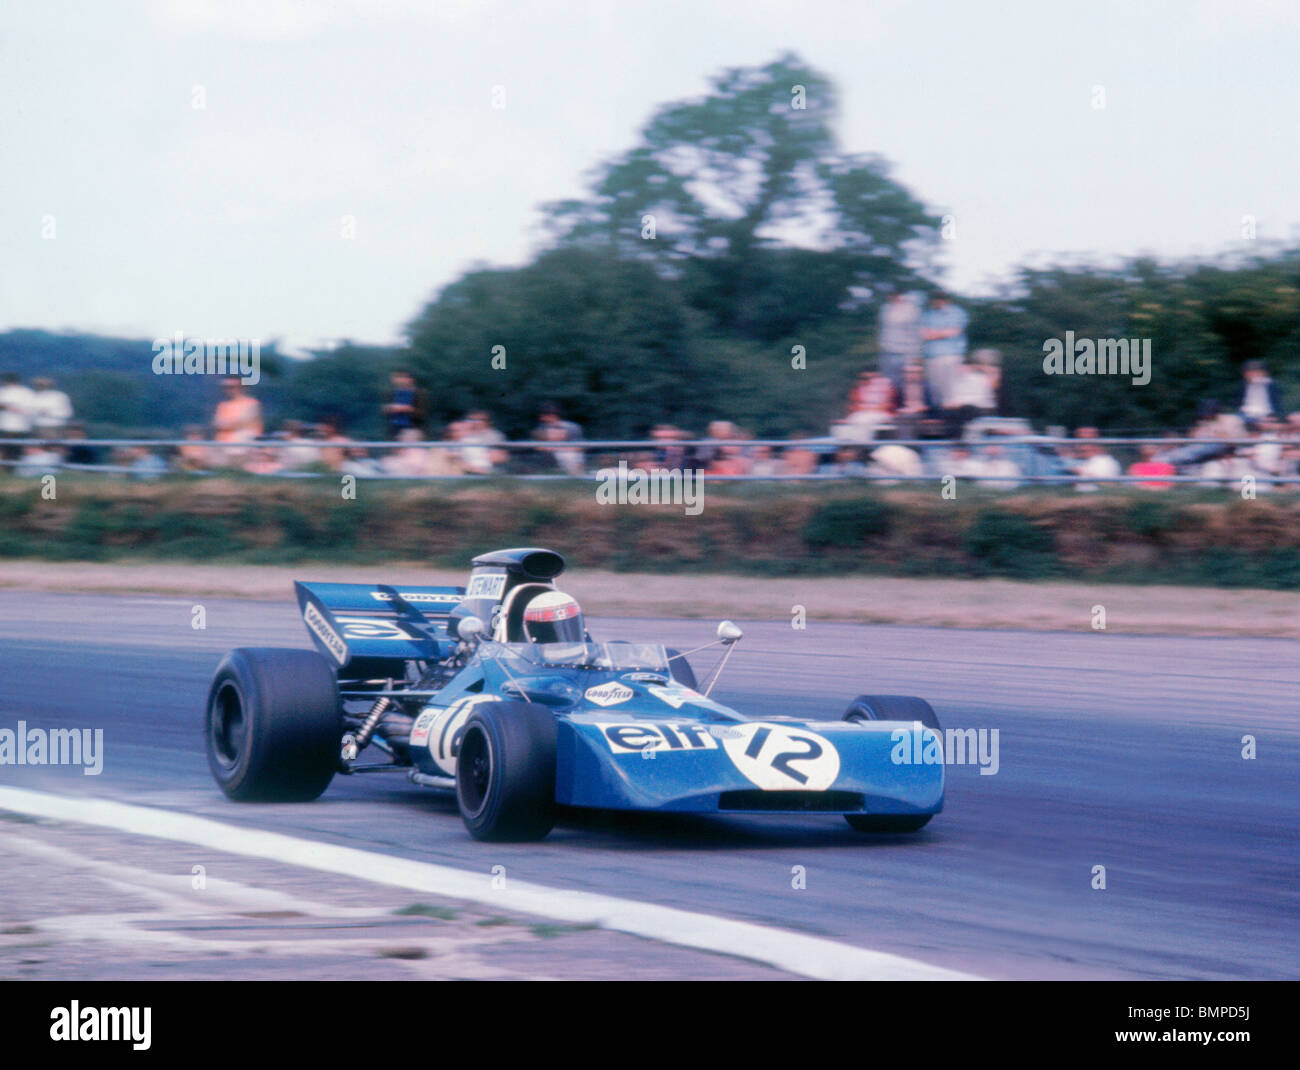 Tyrrell 003 driven by Jackie Stewart at the 1971 British Grand Prix, Silverstone. - Stock Image